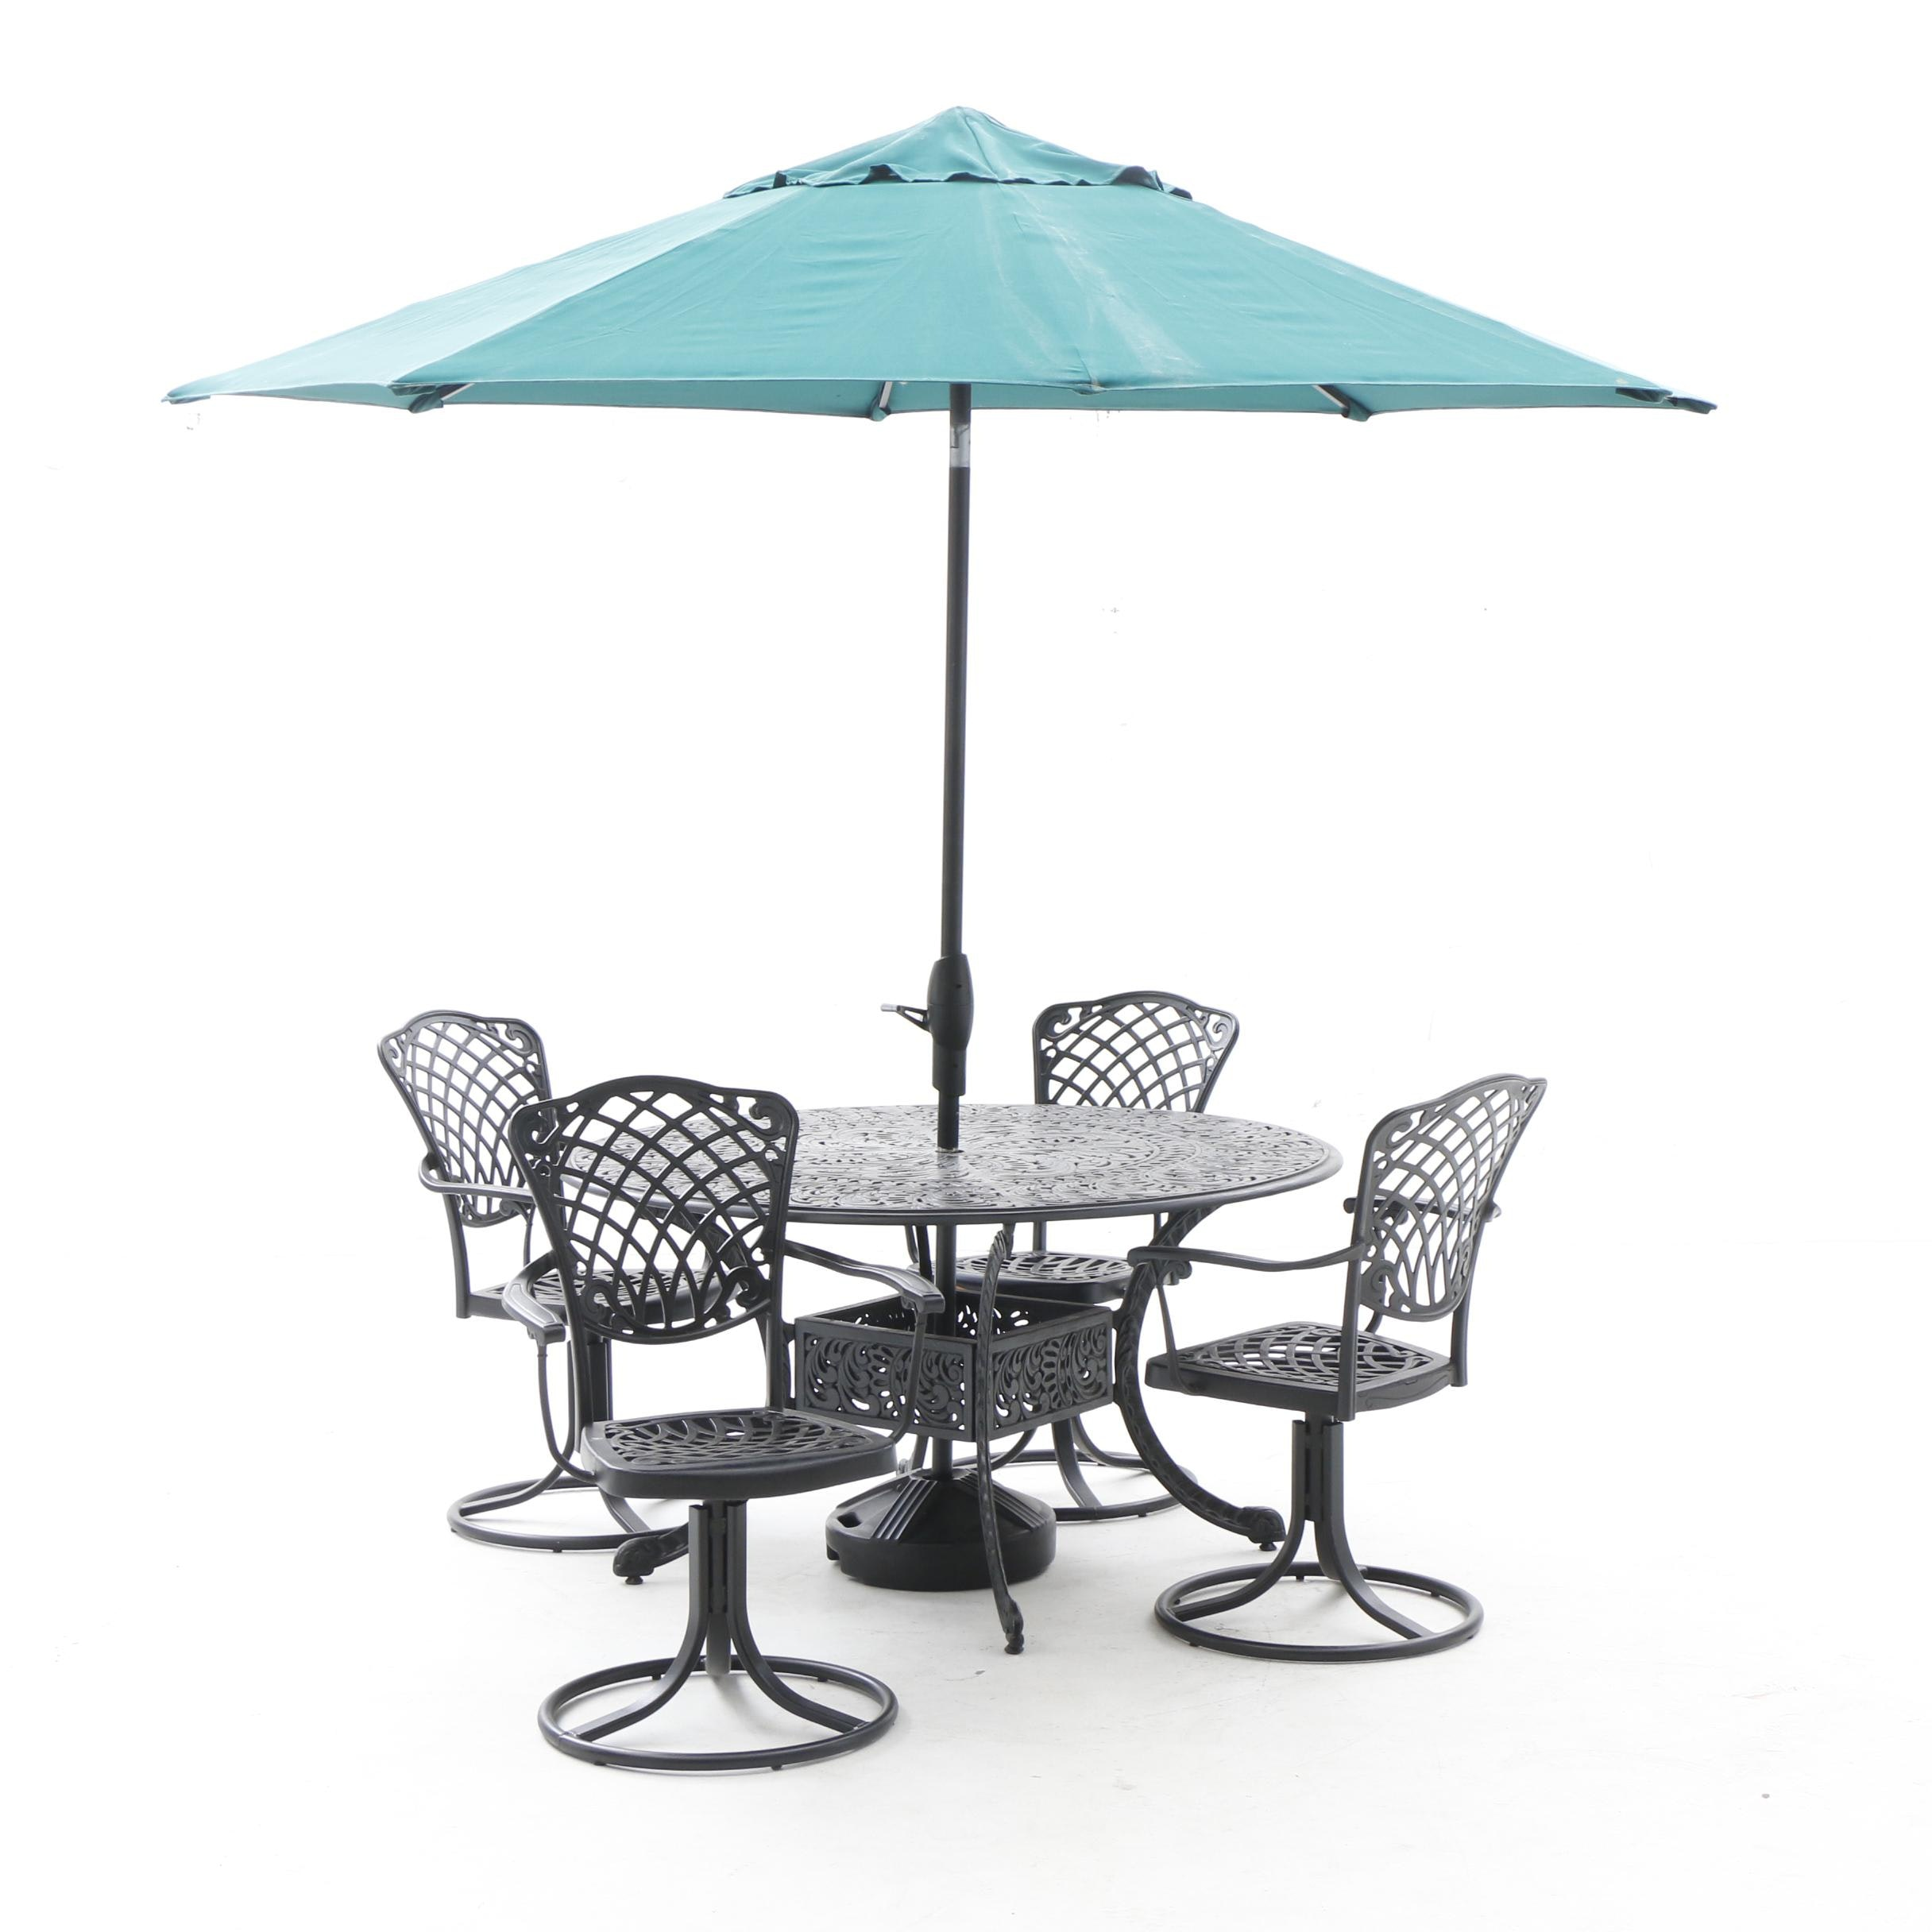 Outdoor Lifestyle Patio Dining Table, Umbrella, and Swivel Armchairs